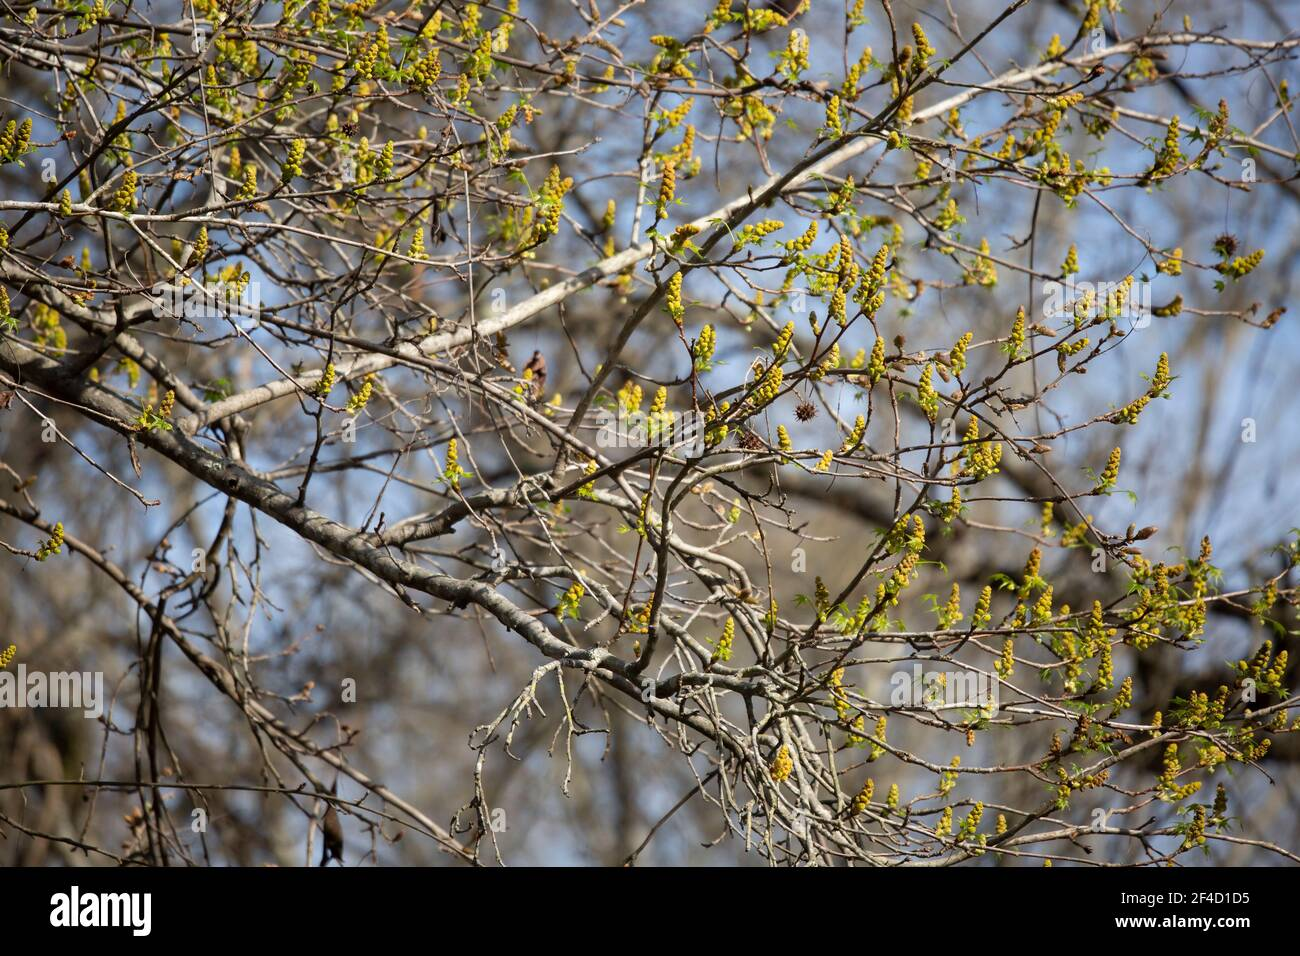 Pollen growing out from tree limbs on a spring day Stock Photo